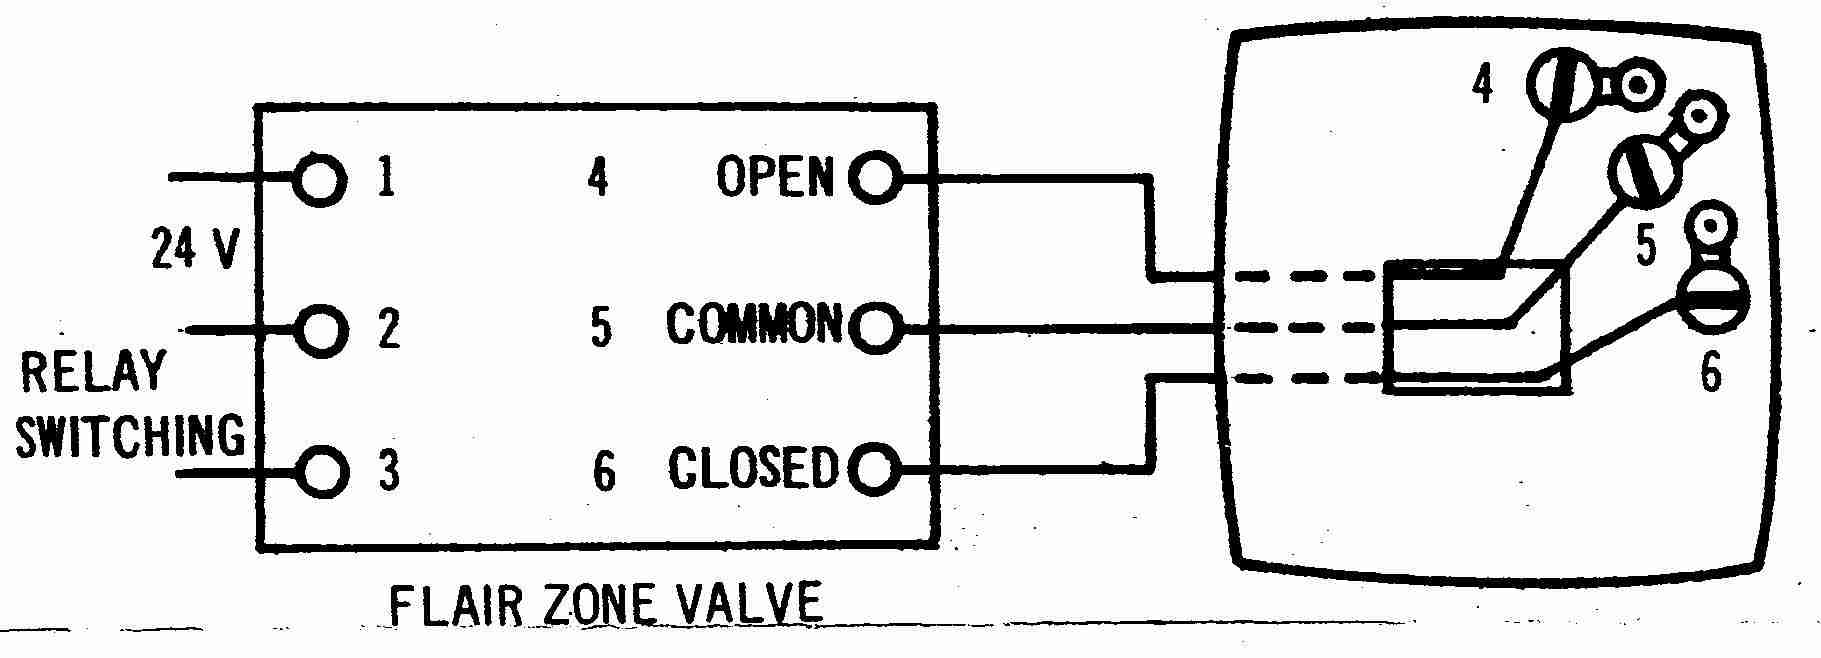 Zone Valve Wiring Installation Instructions Guide To Heating 3 Prong Plug Diagram In Addition 4 Wire 7 Way Trailer Flair Thermostat Controlling A